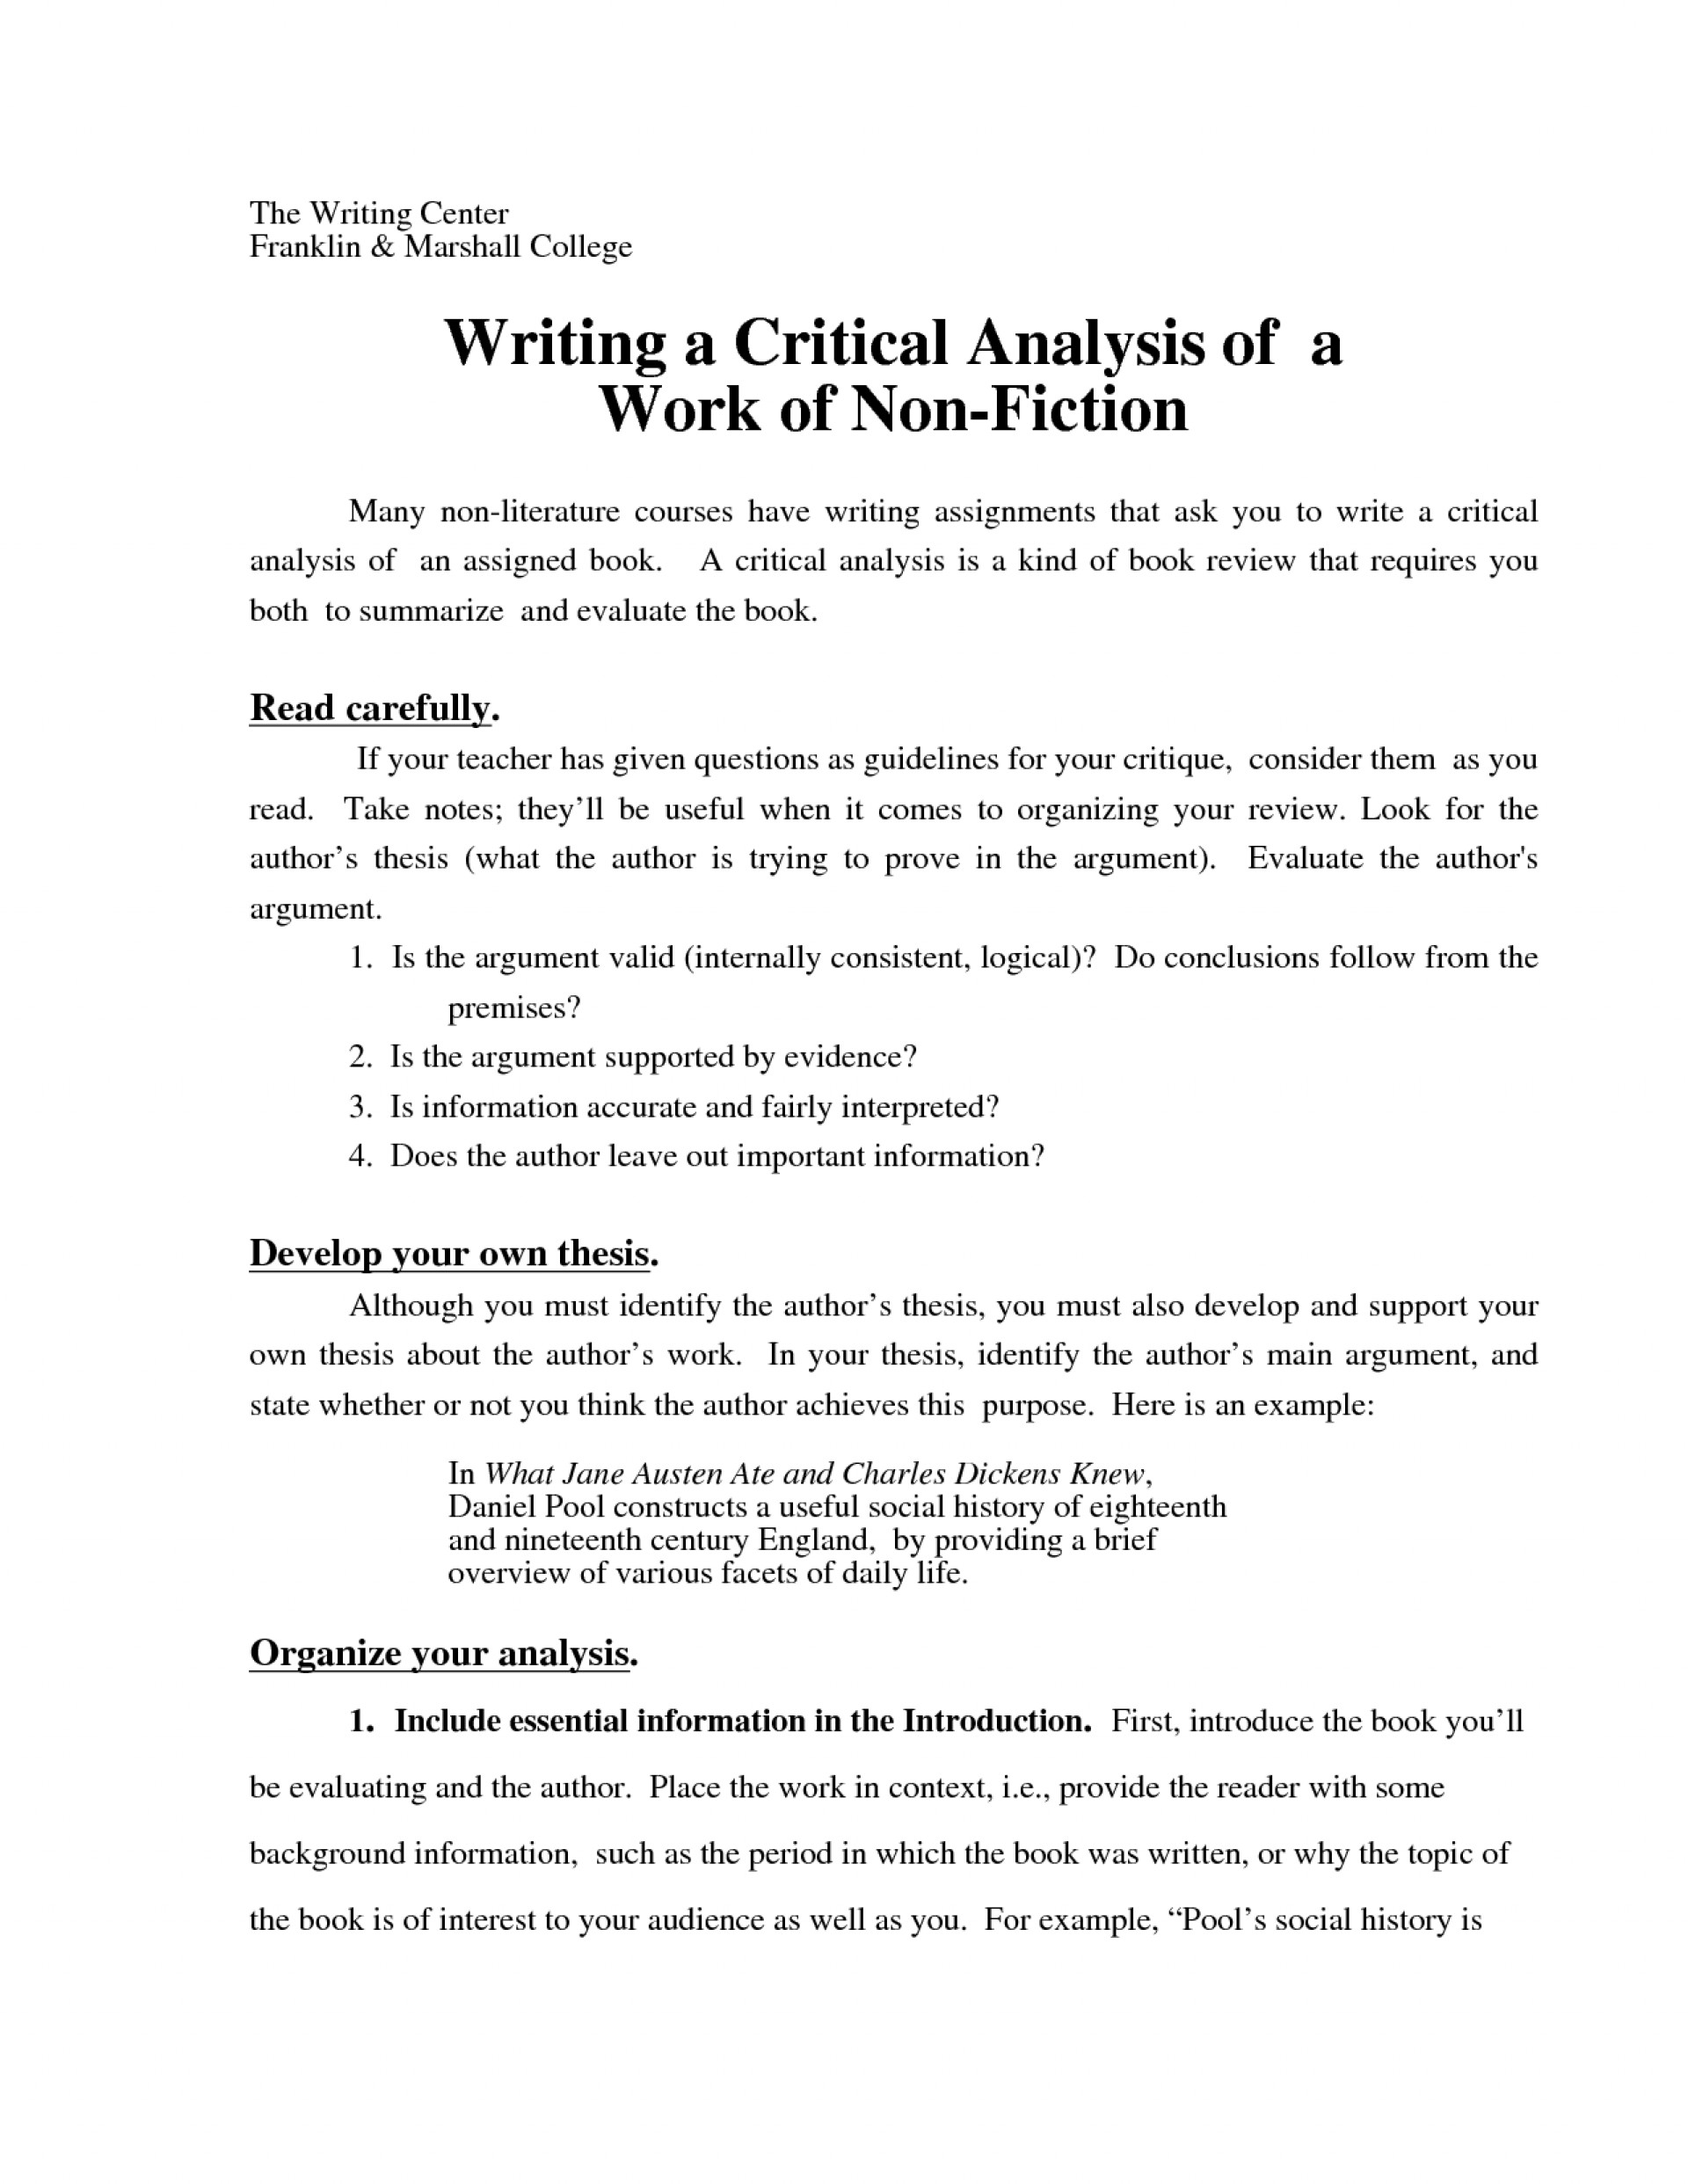 004 How To Begin Critical Essay Nurse Research Papers Vanderbilt Reliable Writing Service Uk Write Quotes From Book In An Analysis Paper Examples 1 Series Title Mla Name Apa Amazing A Review Structure Response 1920